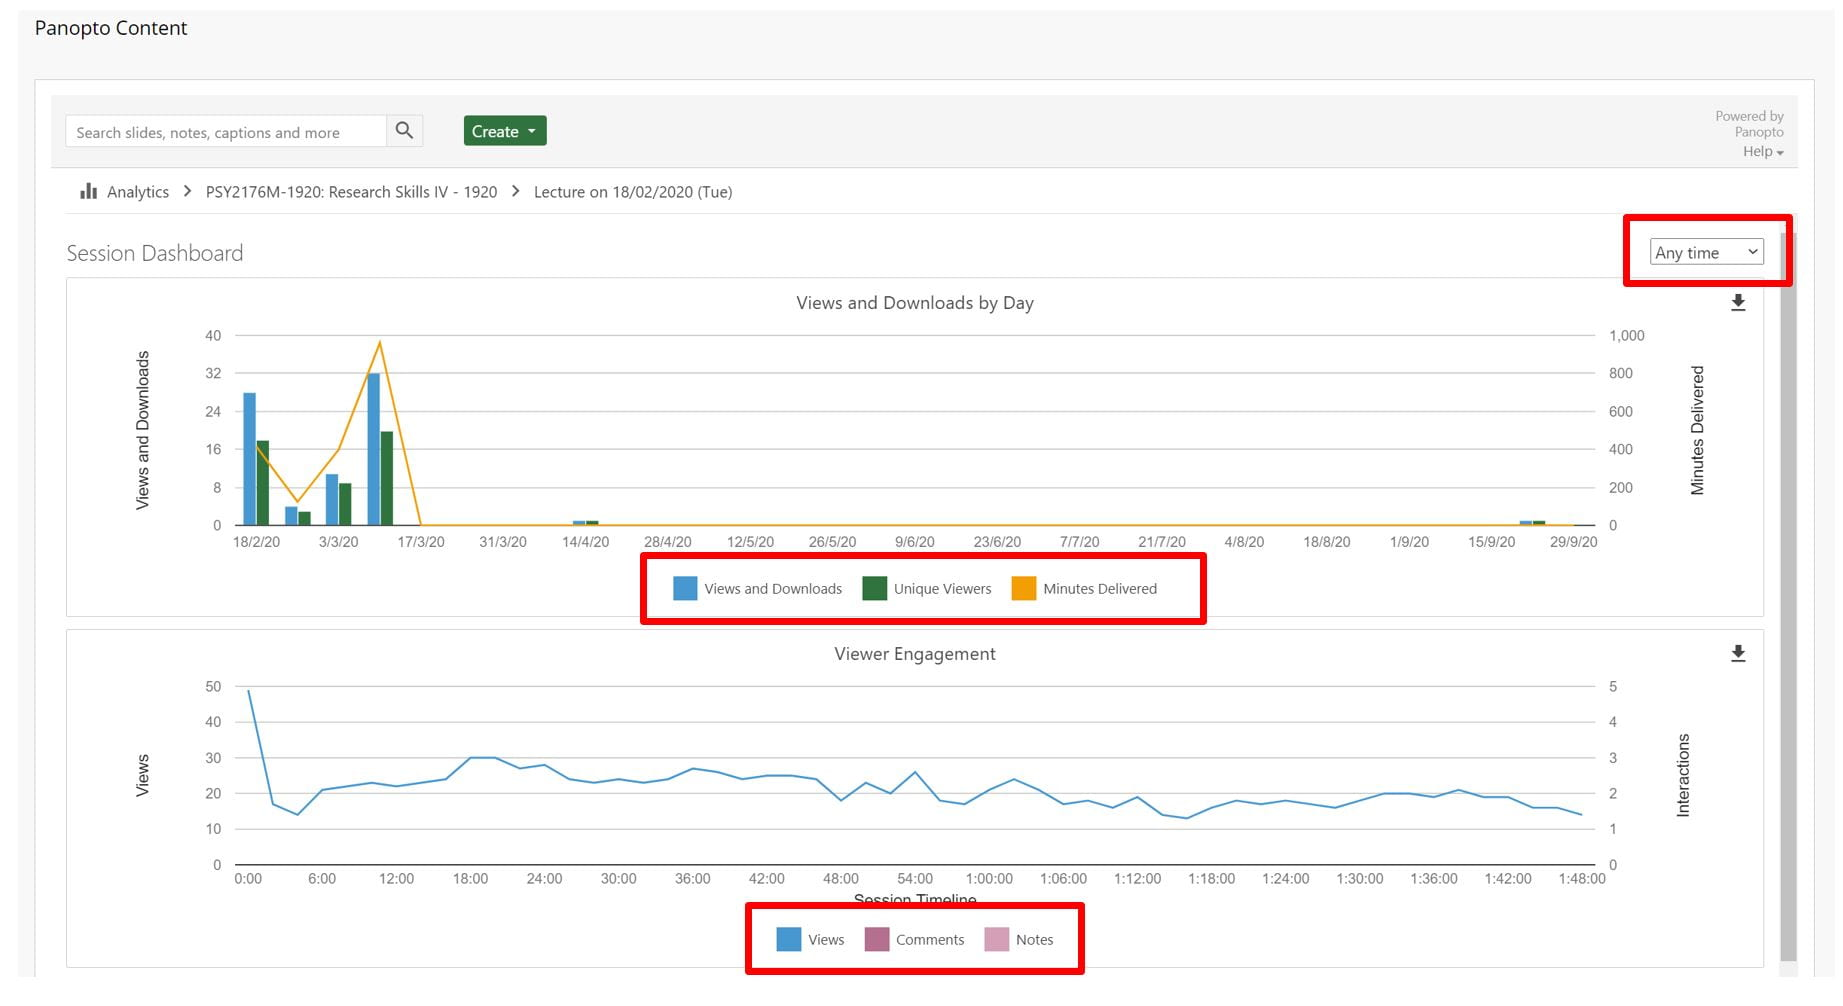 Session Dashboard is shown. Two graphs display content about a specific lecture. The first shows Views and Downloads over days and months, the second shows views throughout the  duration of the video.